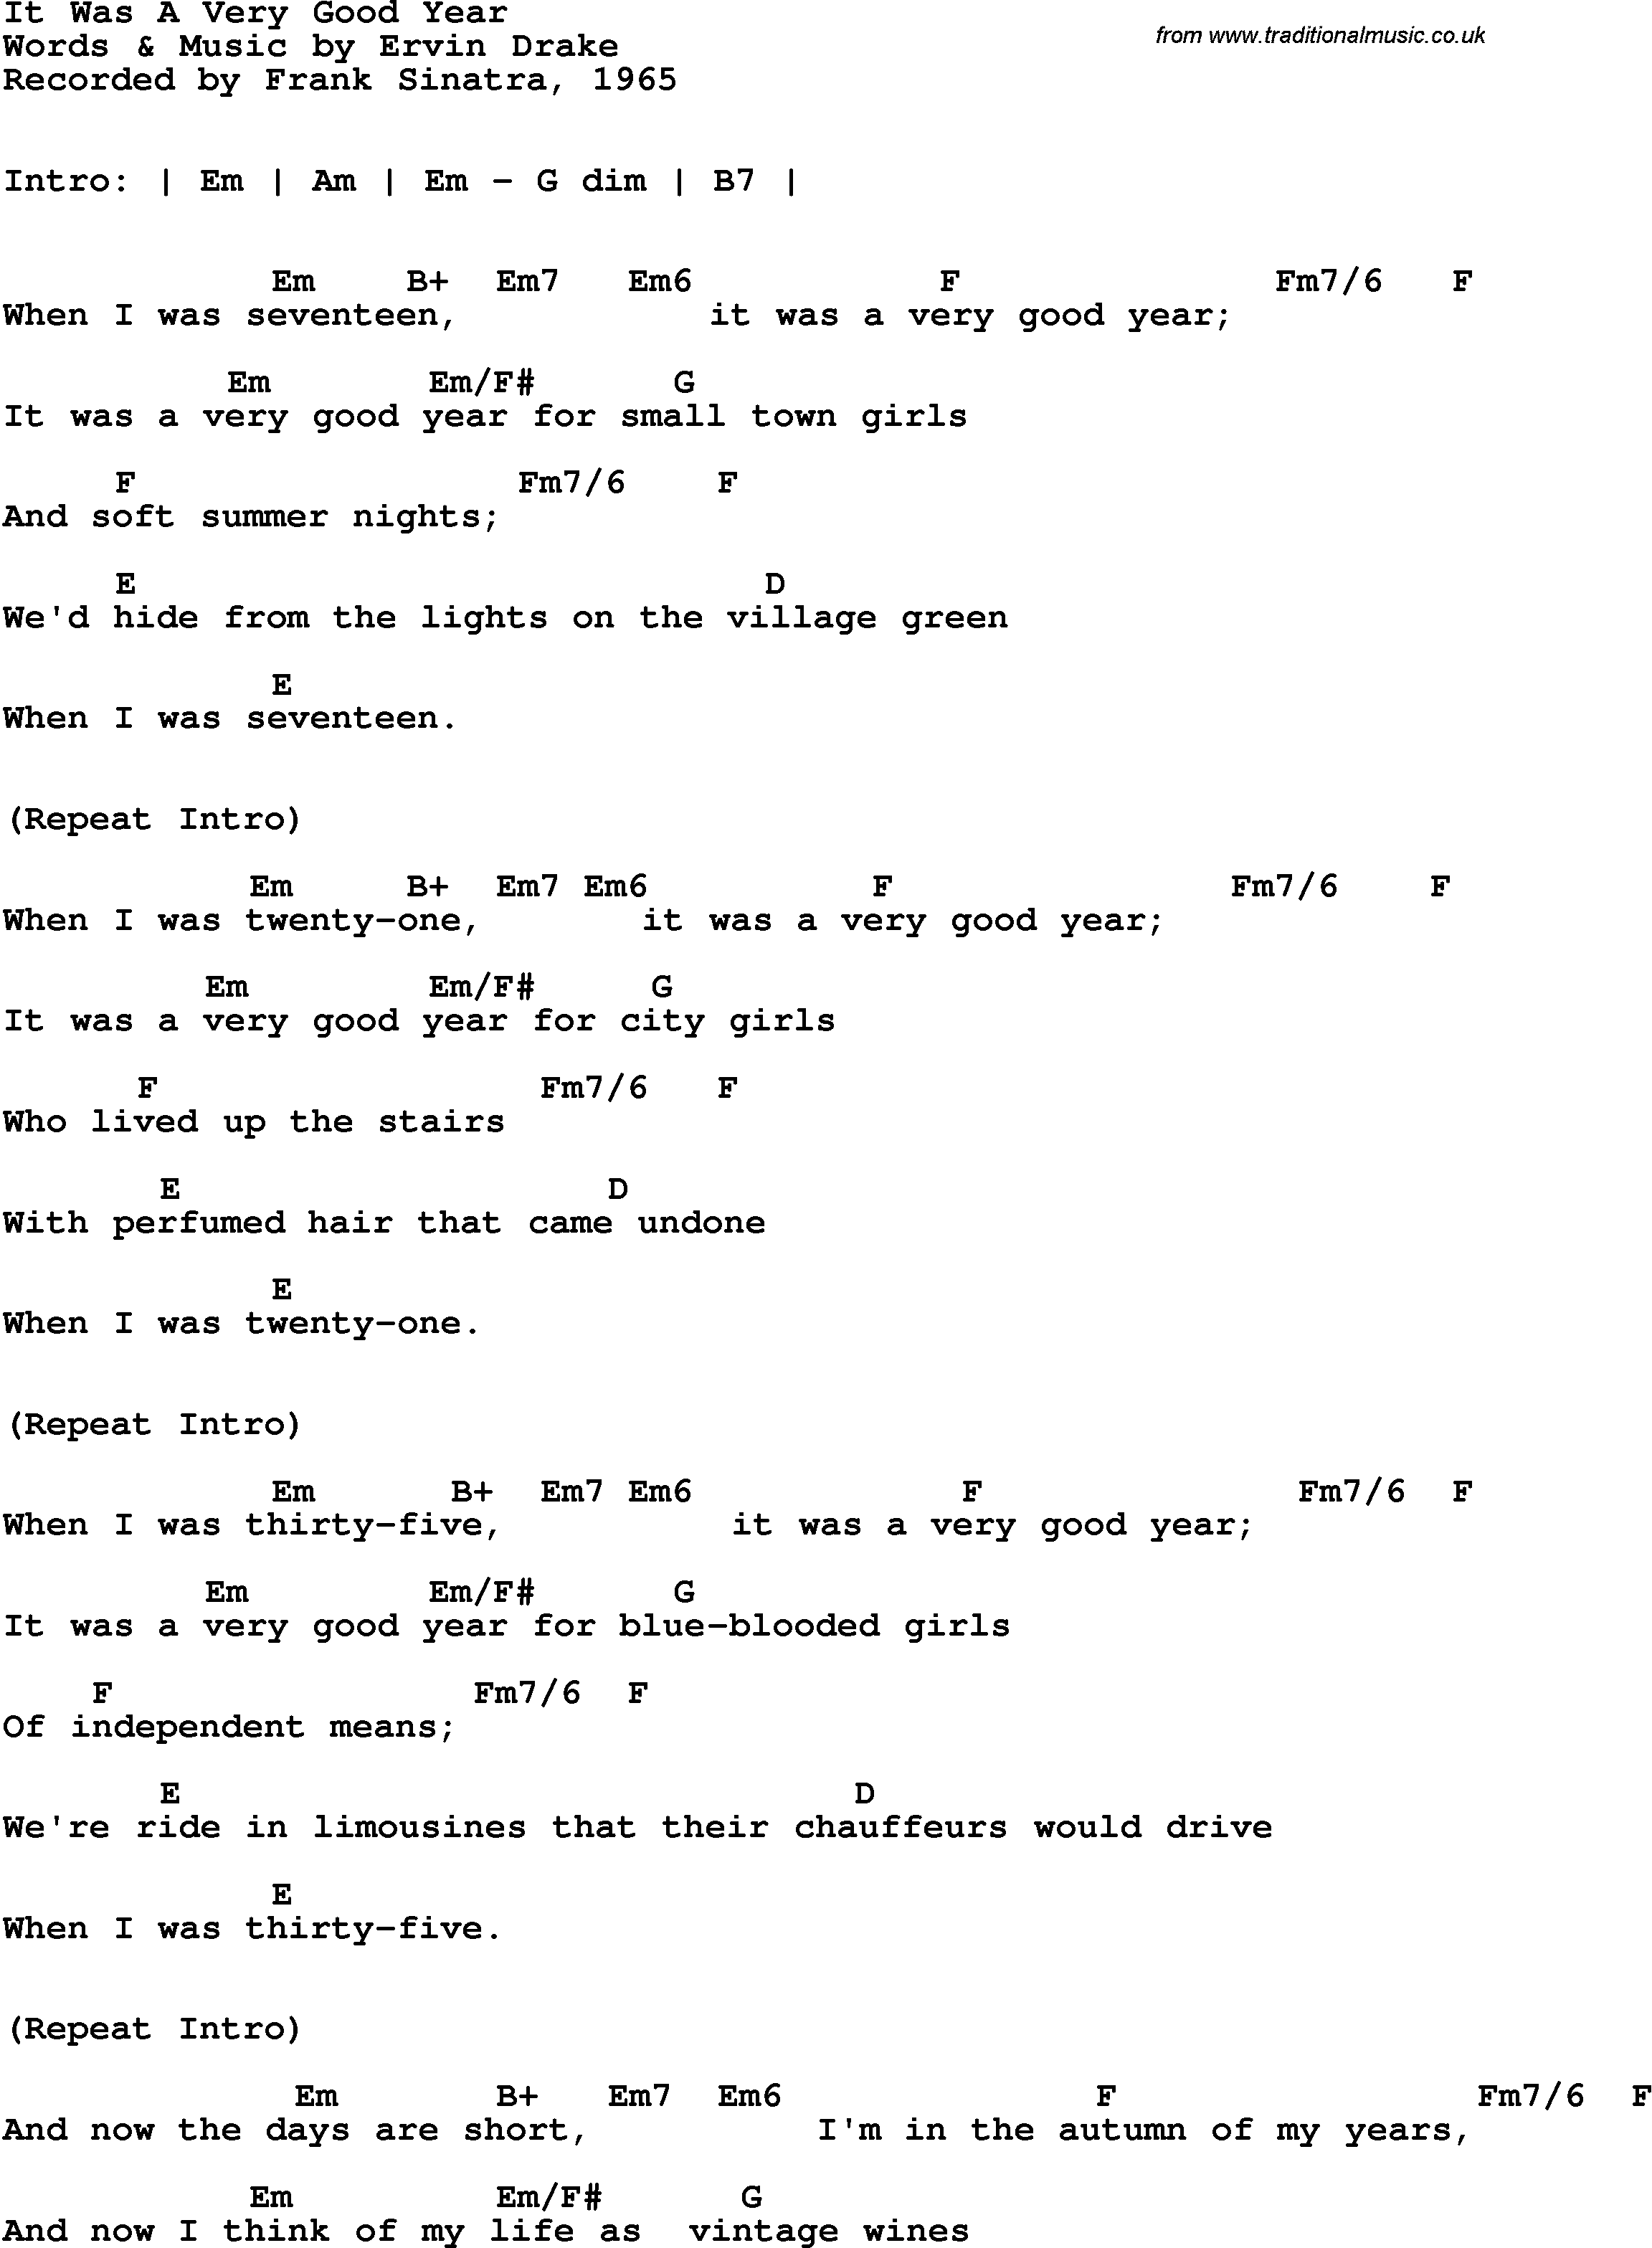 Song Lyrics With Guitar Chords For It Was A Very Good Year Frank